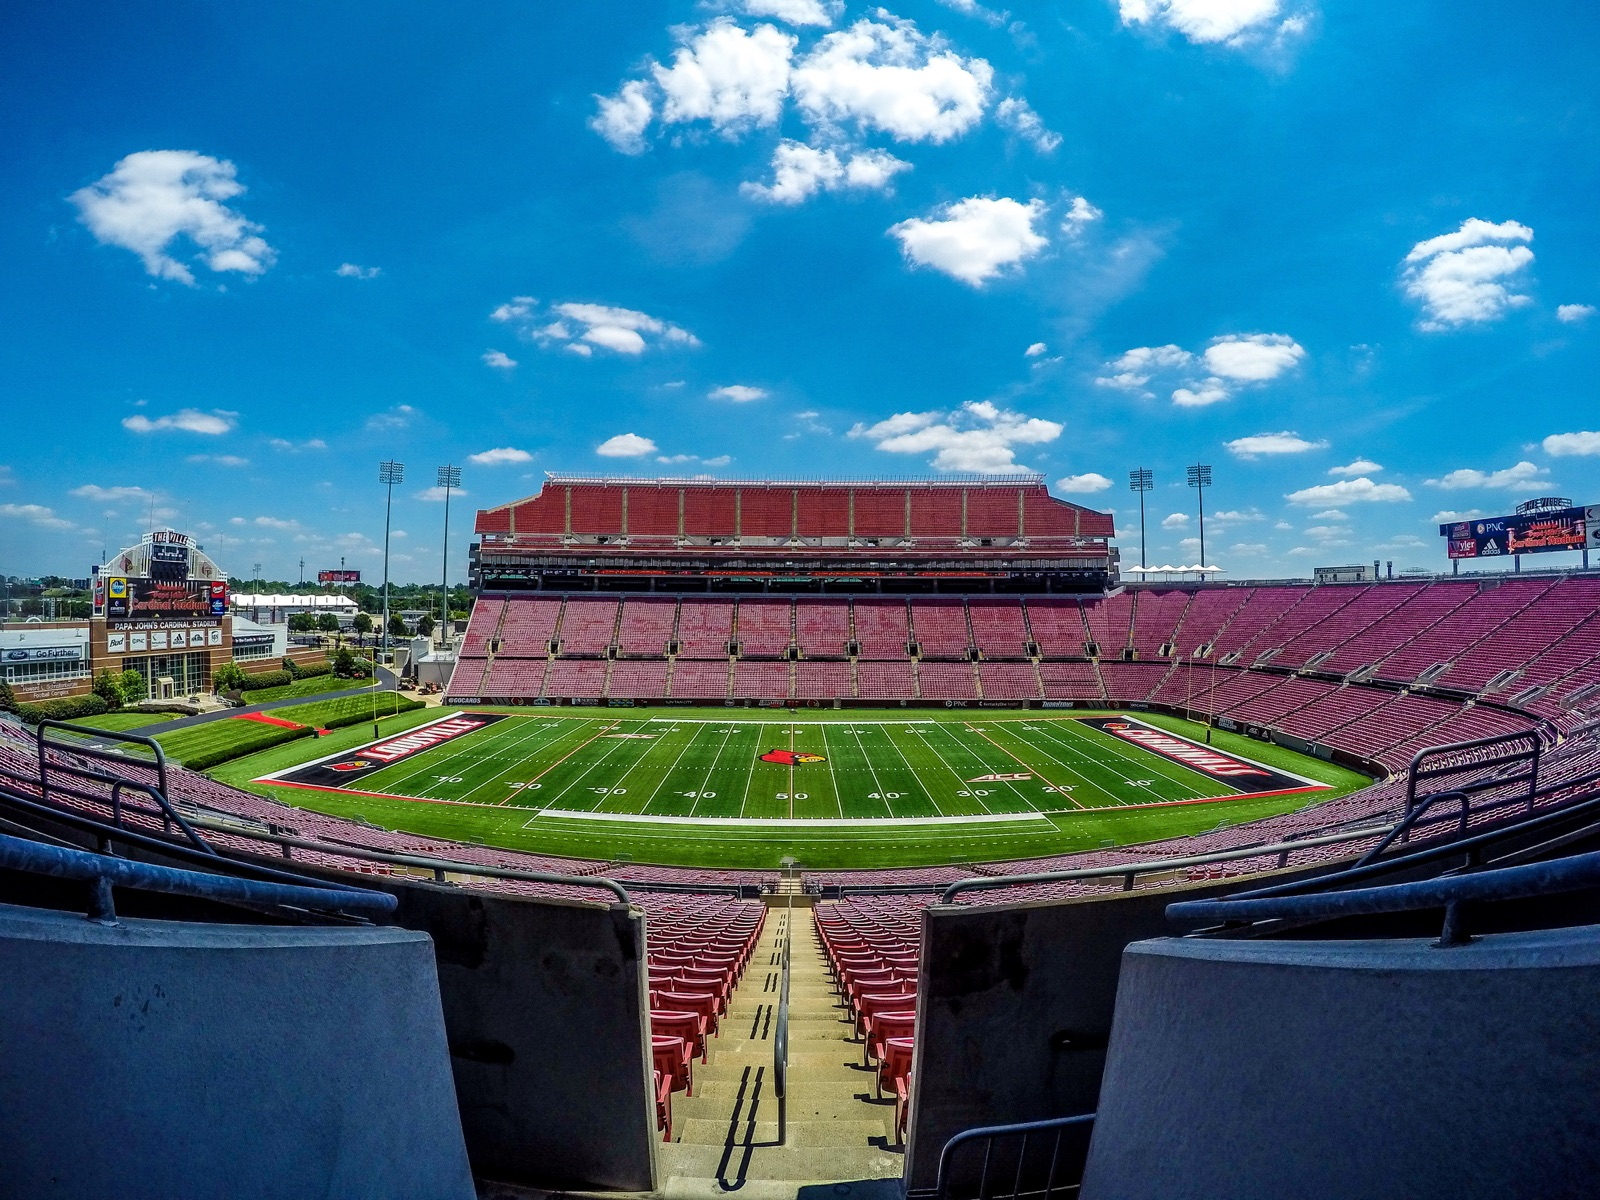 Papa John's Cardinal Stadium Photo by Seth Bloom